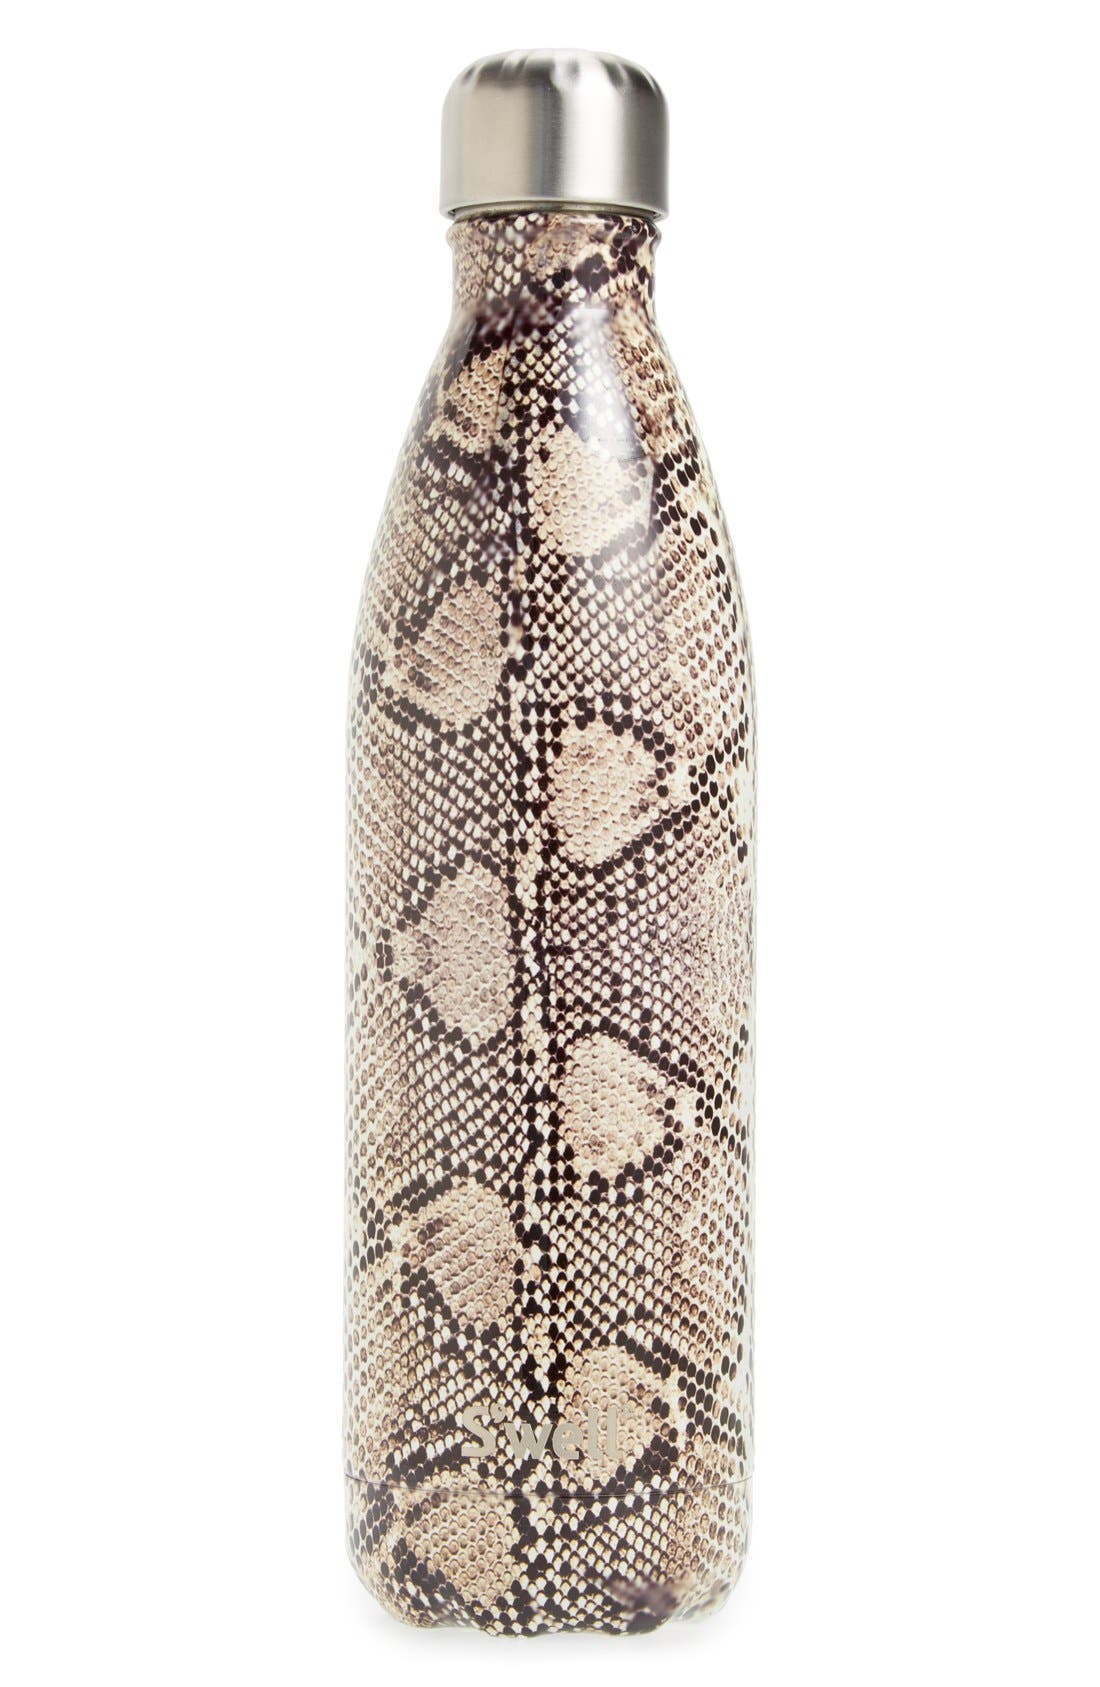 Main Image - S'well 'Exotics Collection - Sand Python' Stainless Steel Water Bottle